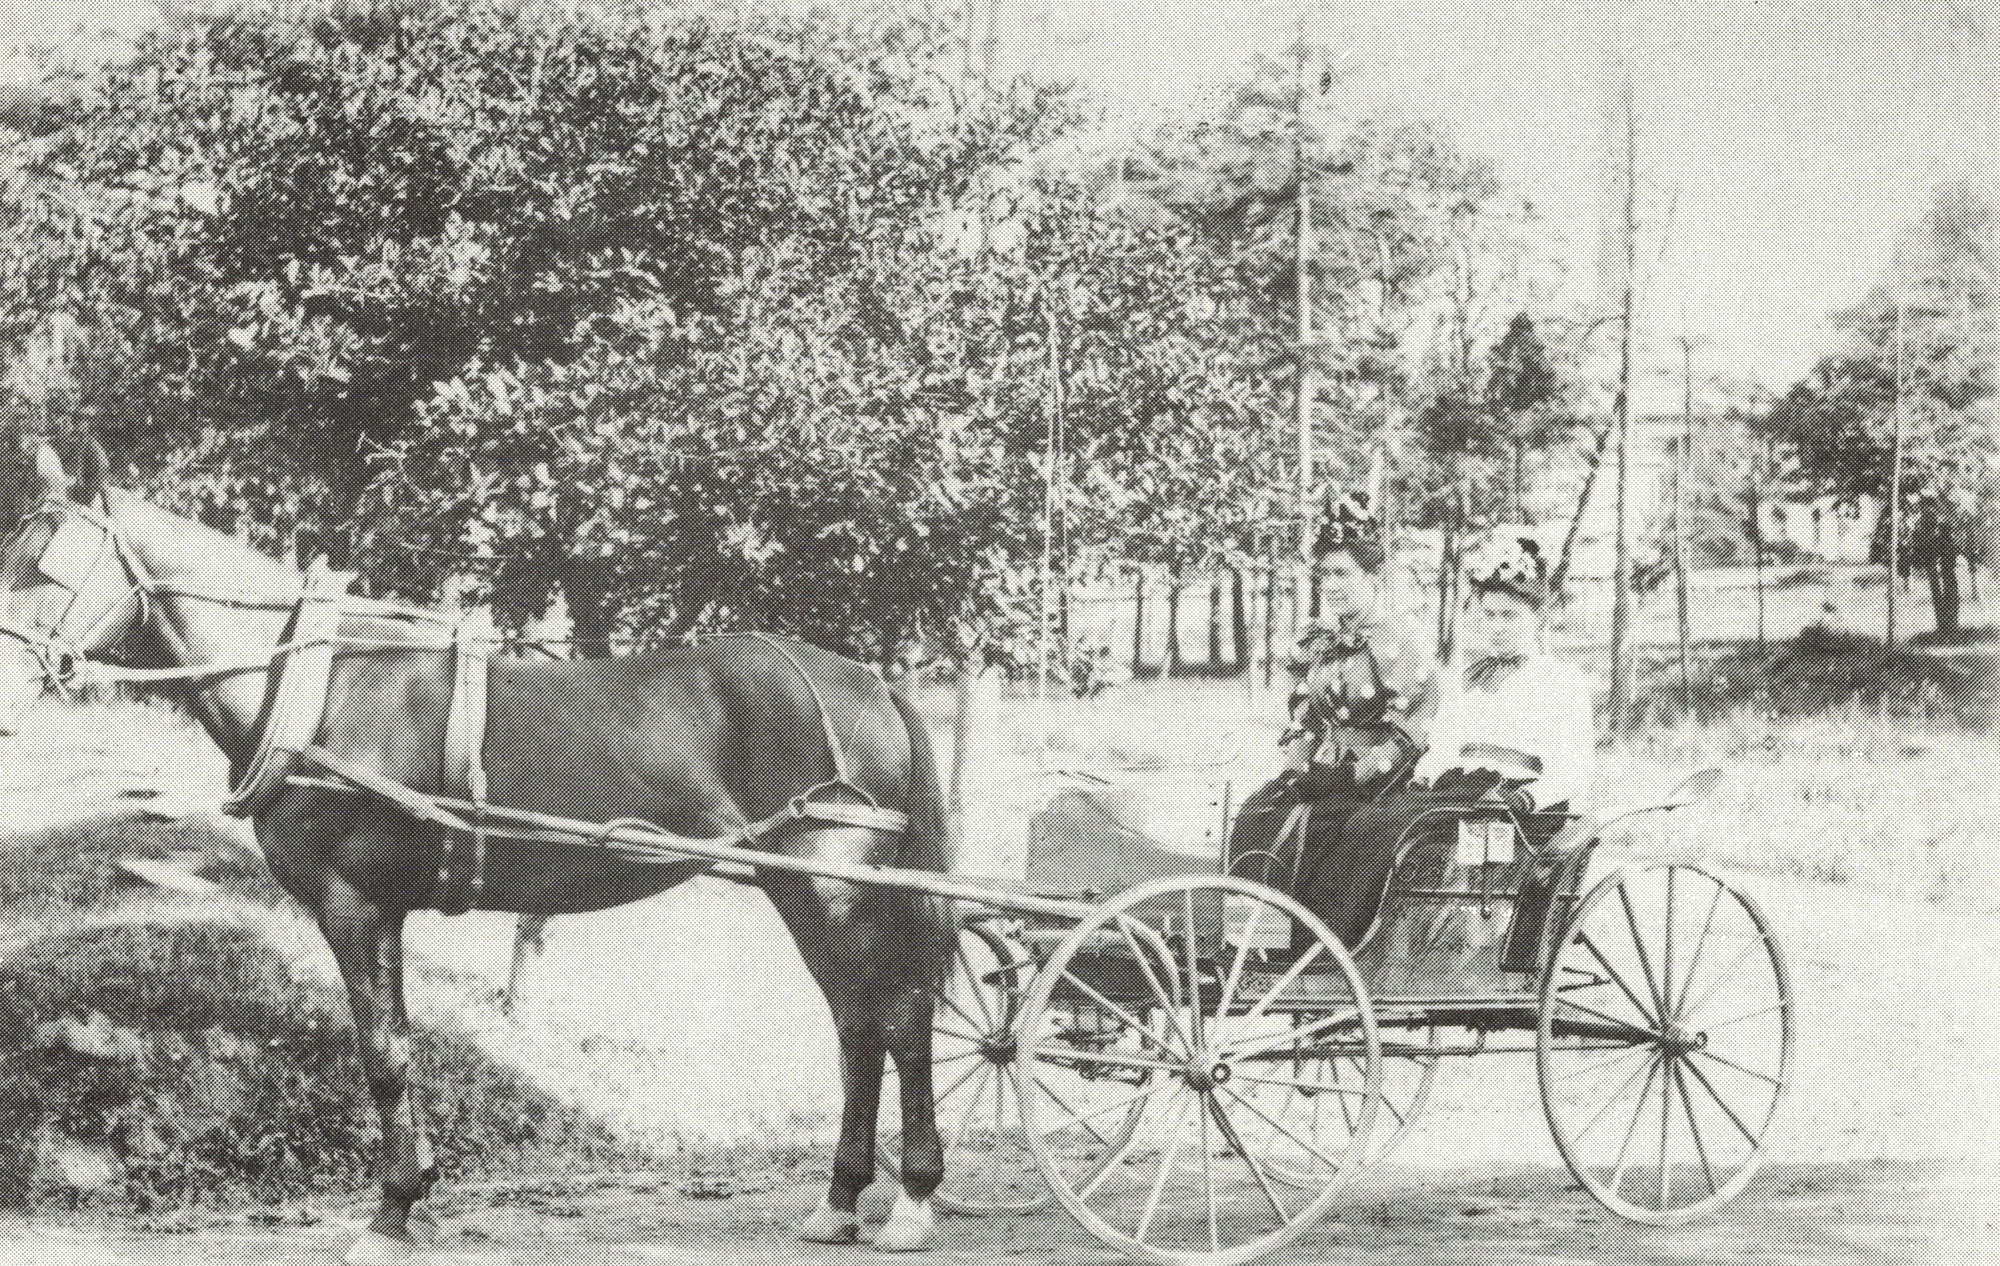 old black and white photo of horse, buggy and 2 female passengers wearing circa 1900 clothing